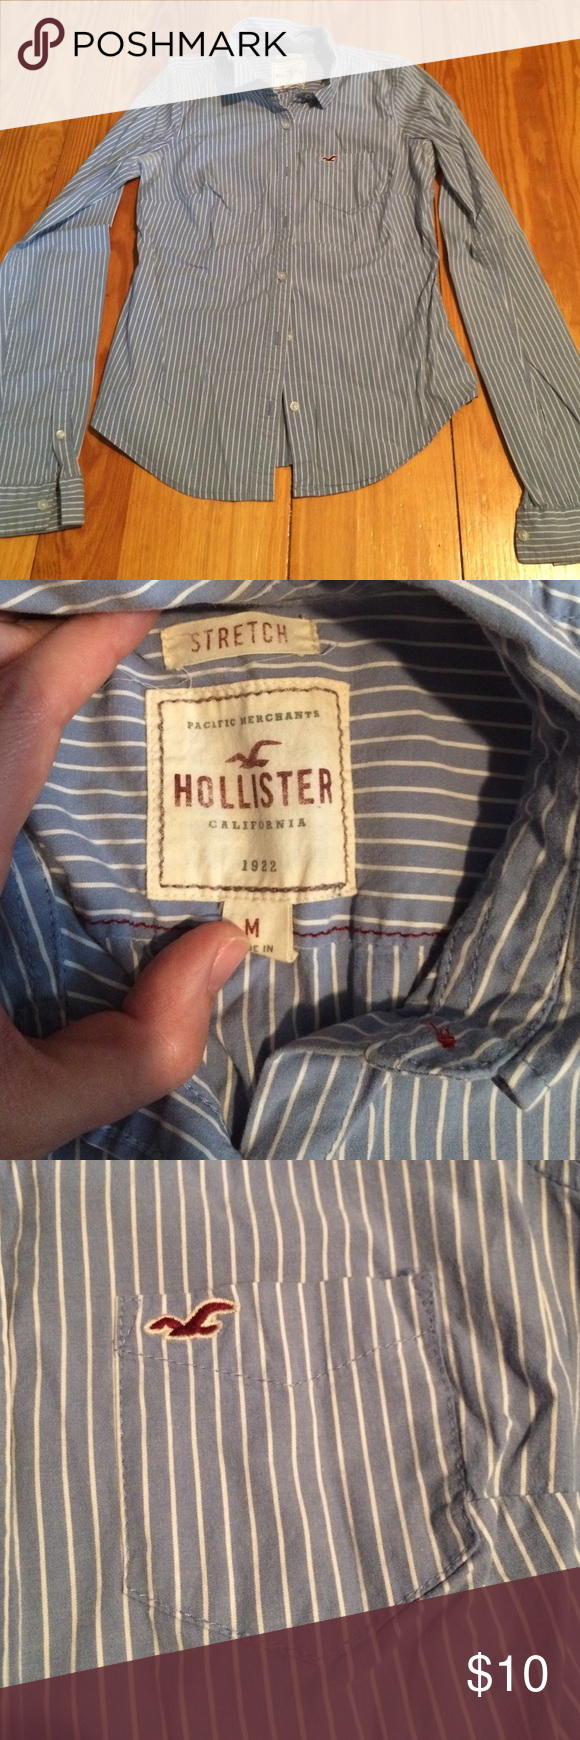 Hollister Striped, stretchy button-up This shirt is blue and white striped- ultra soft and stretchy, and pretty wrinkle-resistant. Fits like a small. Hollister Tops Button Down Shirts